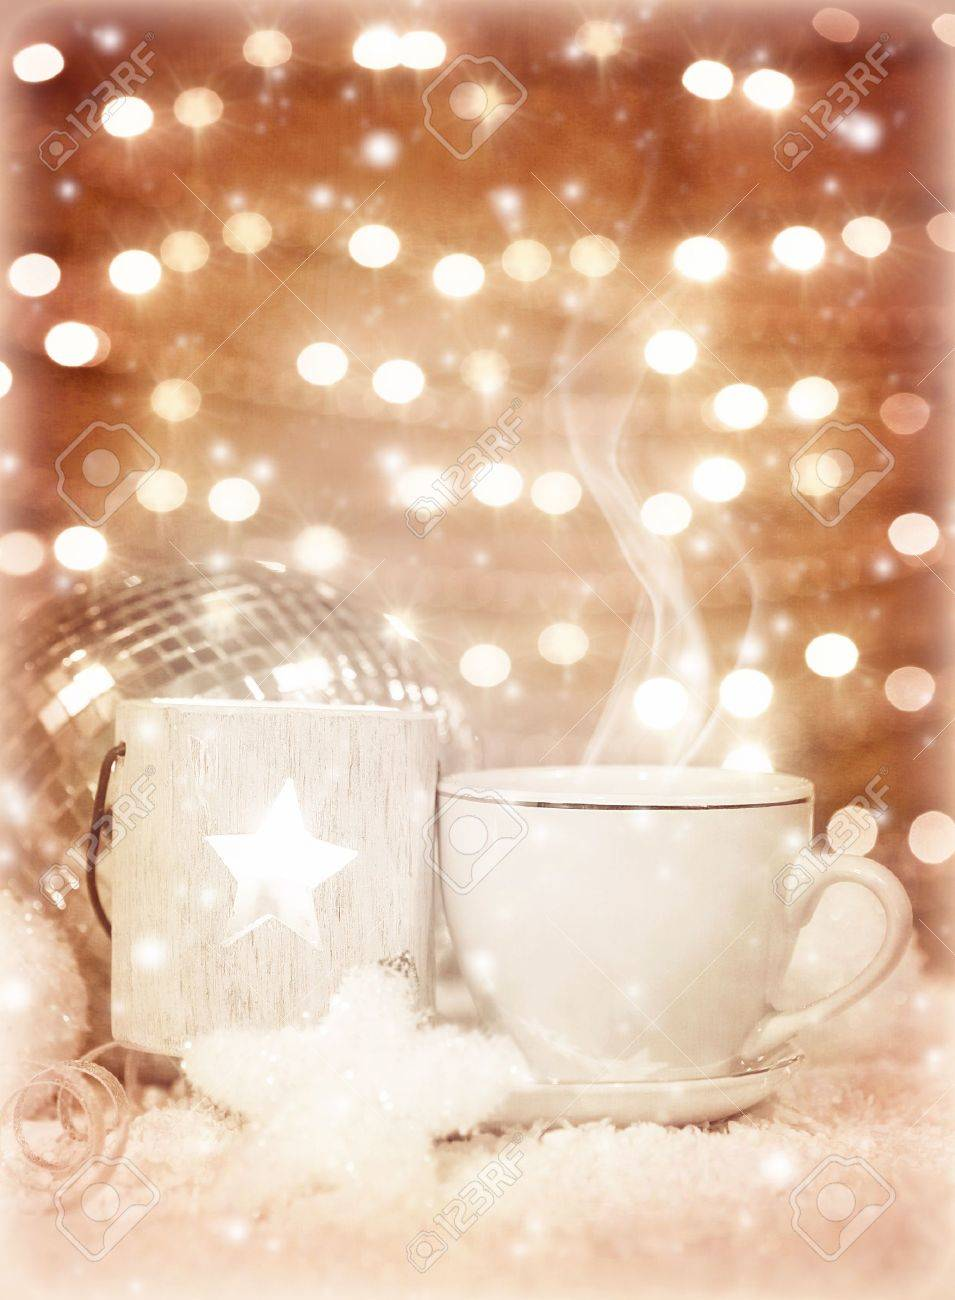 Picture of beautiful luxury white cup of tea on festive glow background, New Year greeting card, home Christmastime decor, hot chocolate drink, restaurant table setting, winter holidays Stock Photo - 16976257